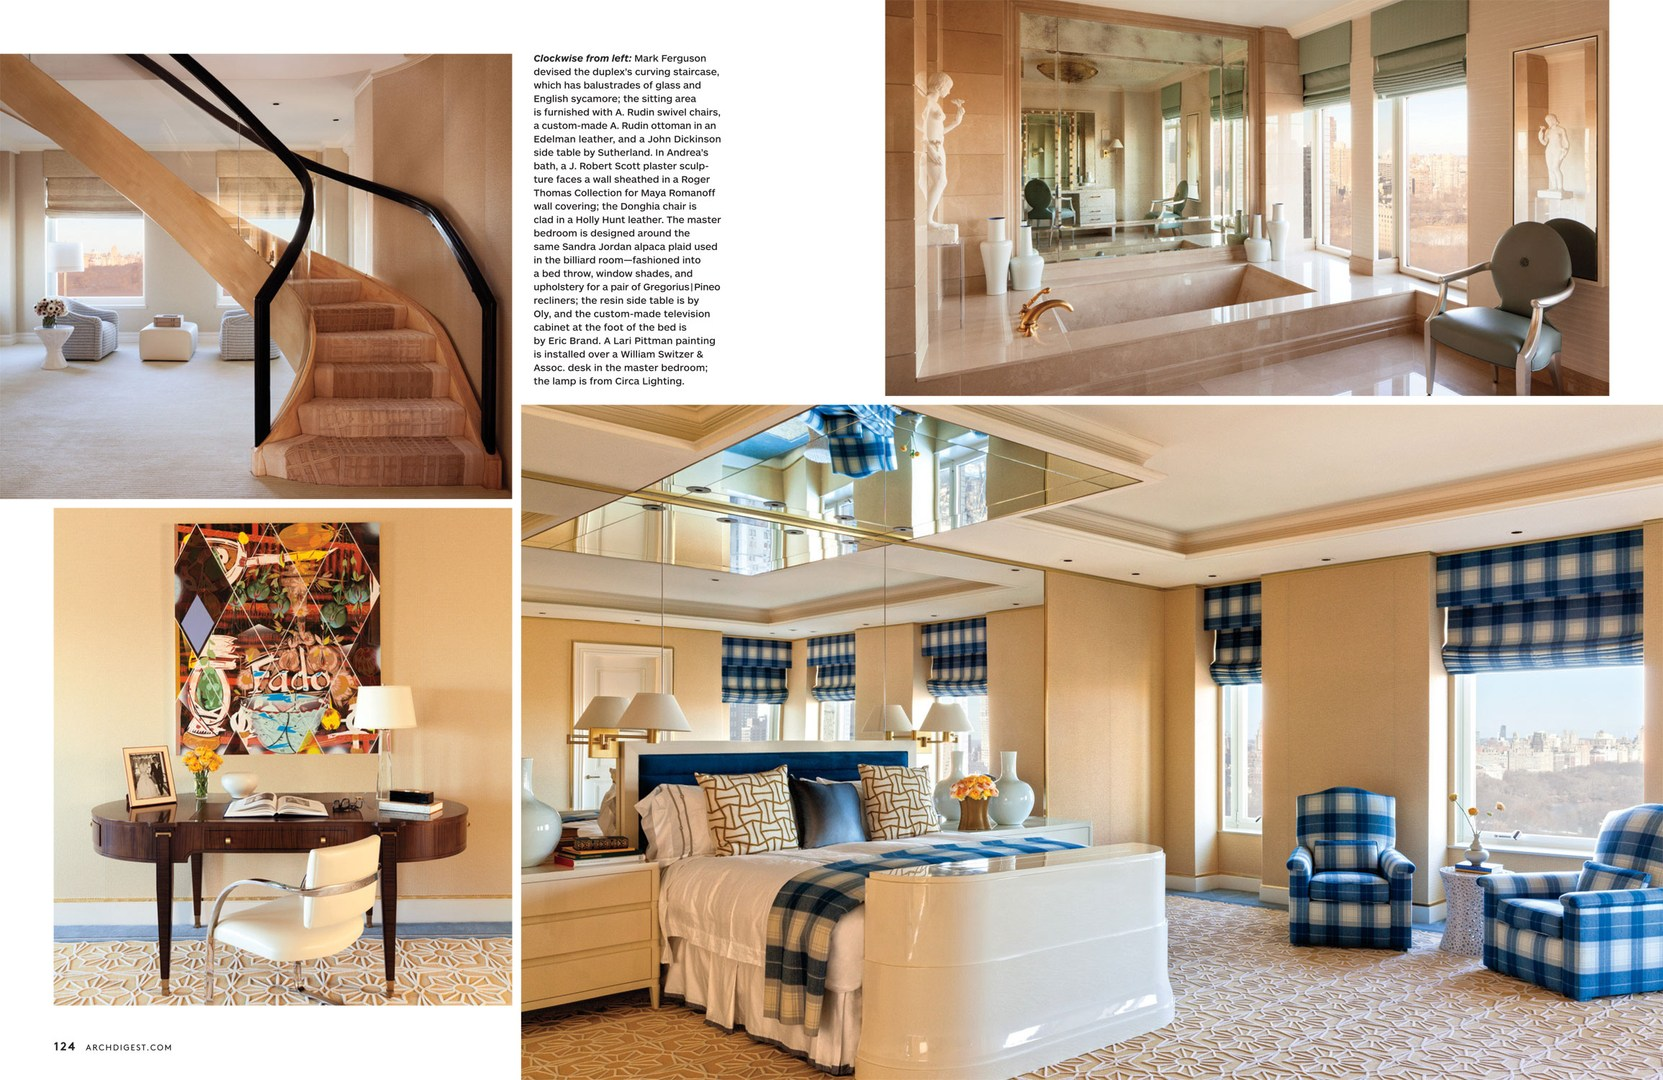 Full House - Architectural Digest March 2014 - Interiors ...